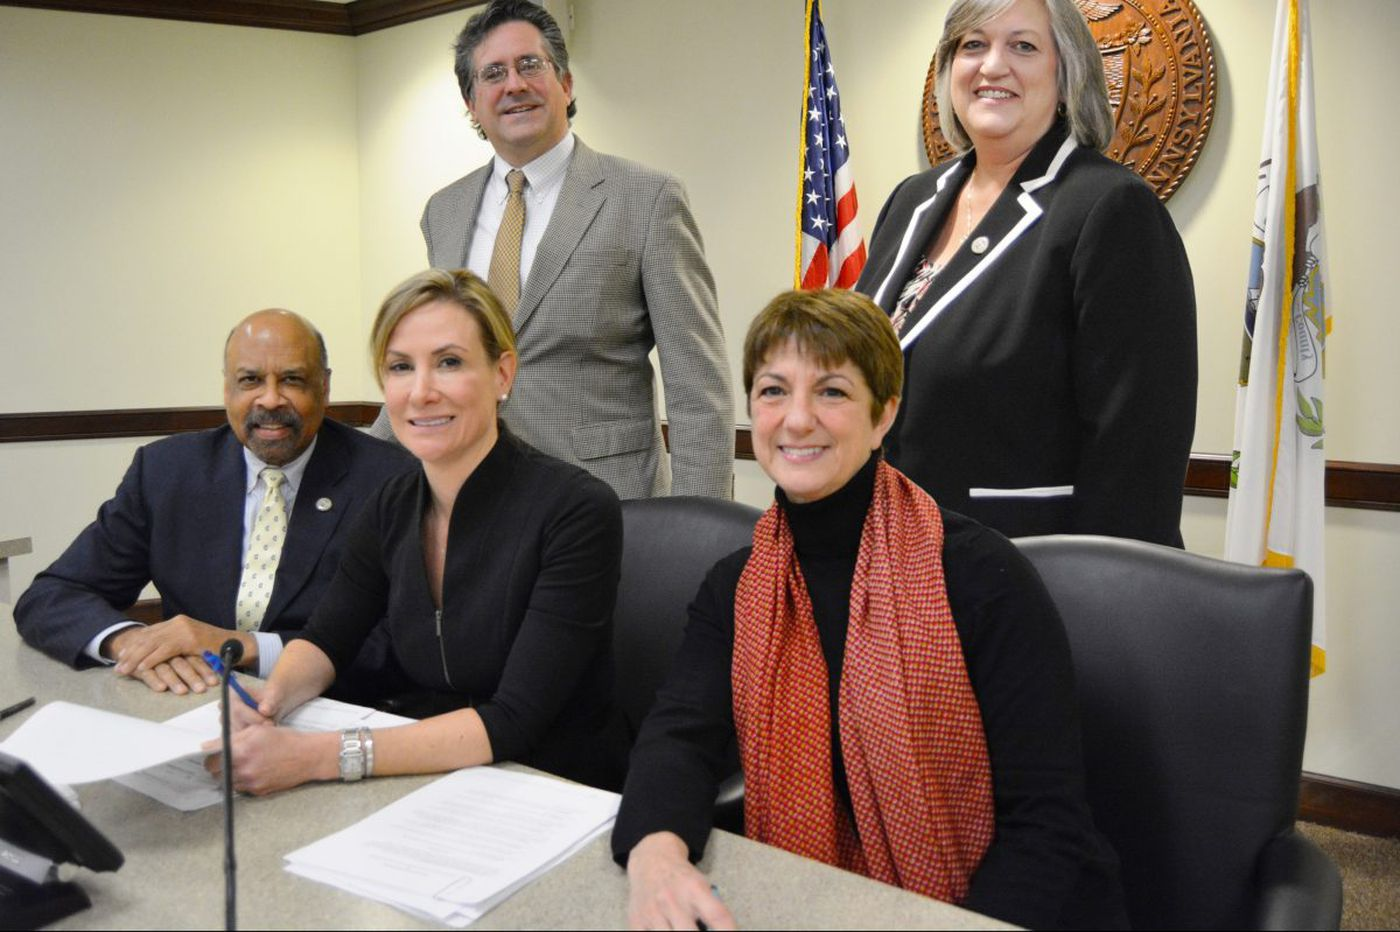 Chester County invests pension funds in local venture capital